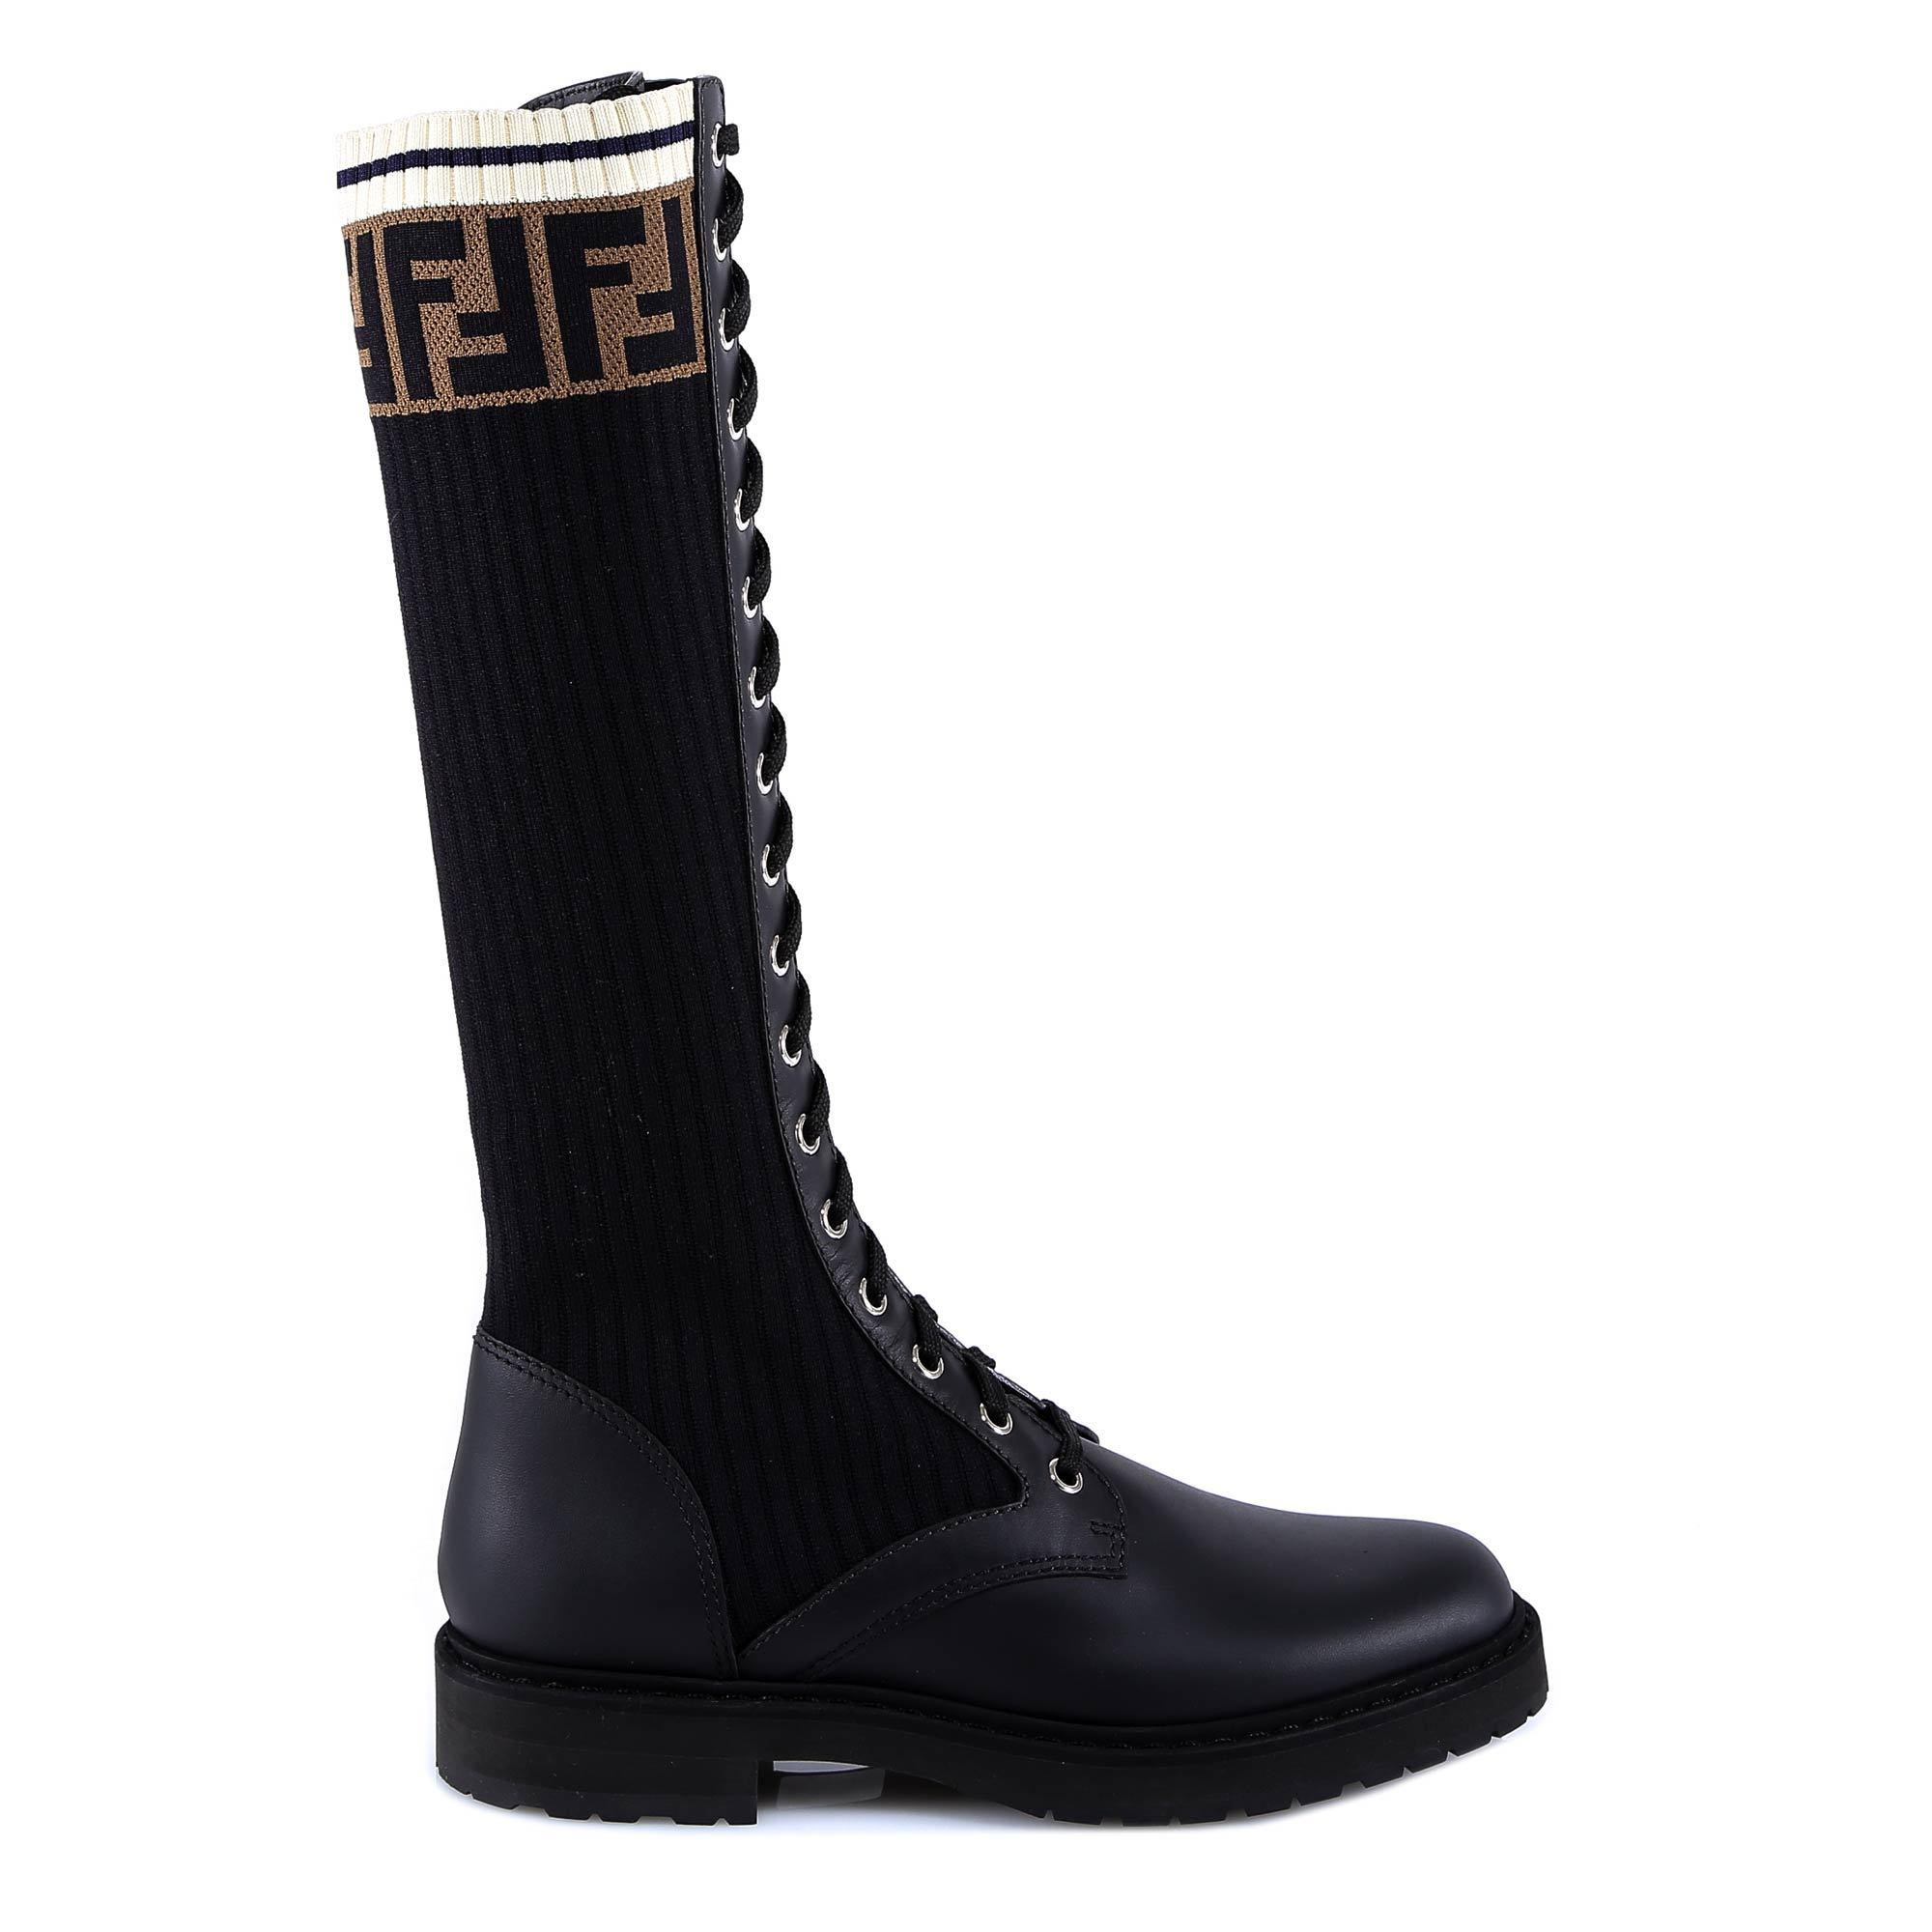 Fendi Leather Lace-up Sock Boots in